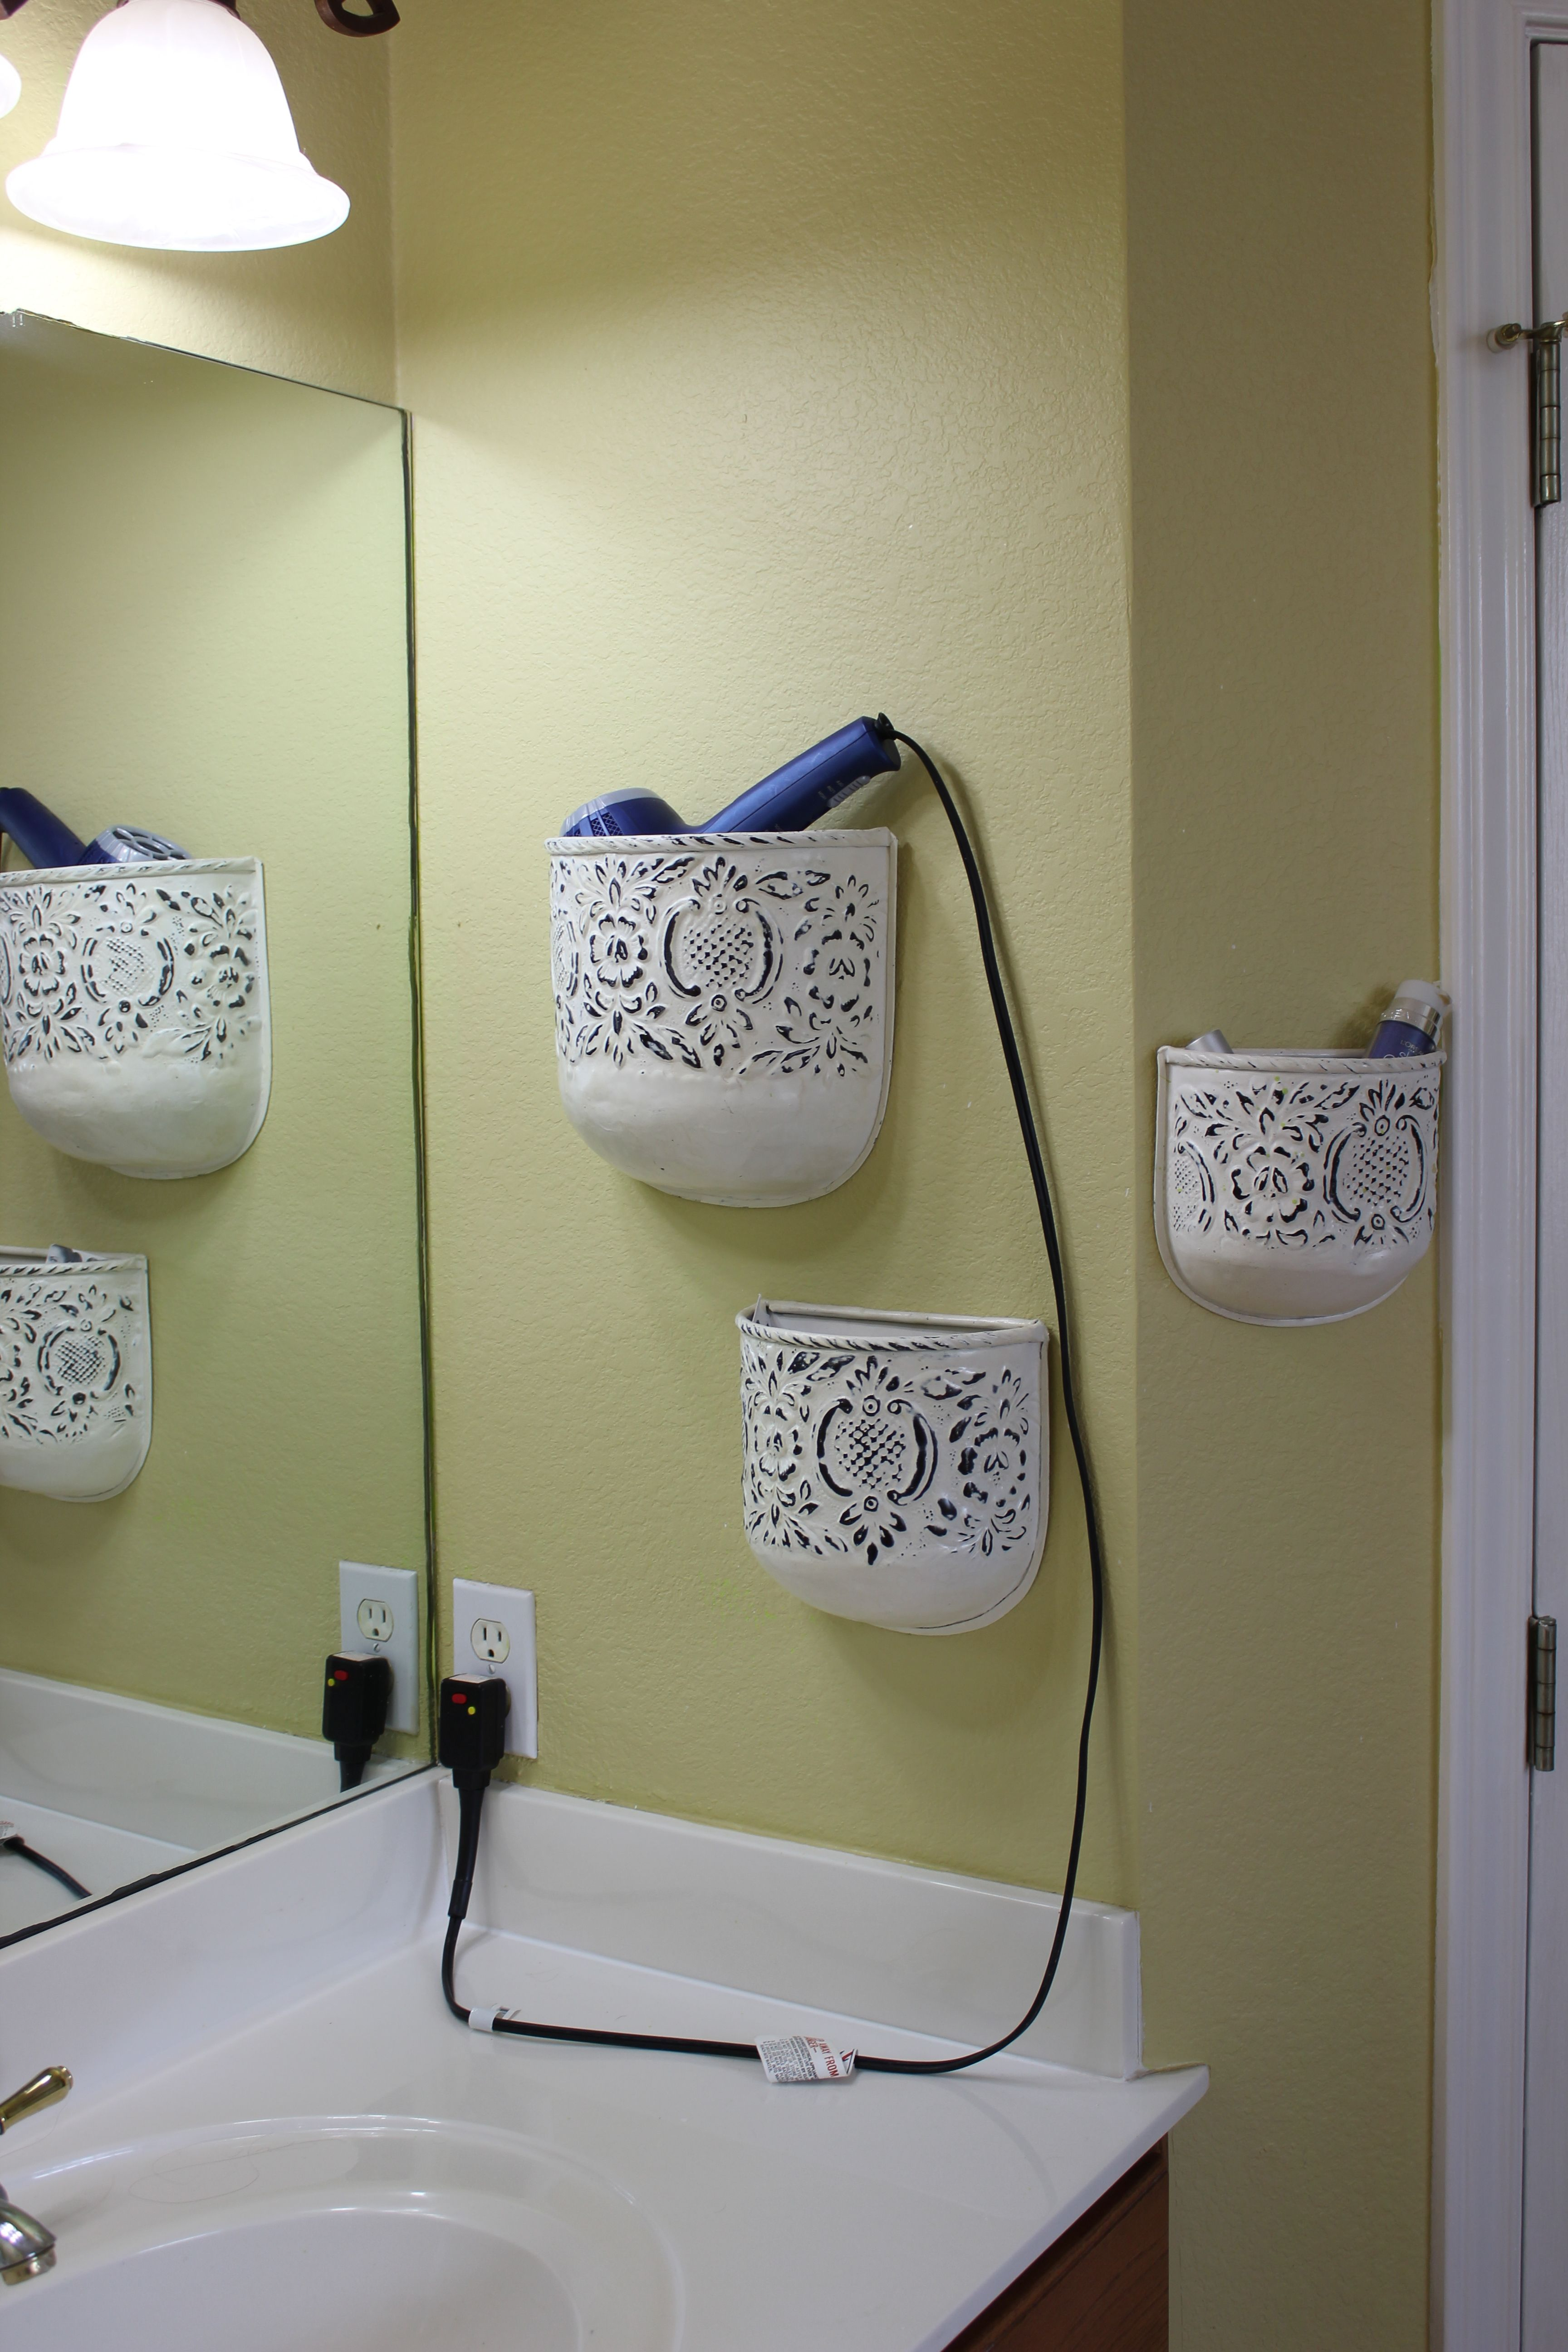 Diy bathroom storage ideas - Beautiful Diy Mirror Frame Beautiful Diy Mirror Frame 30 Brilliant Bathroom Organization And Storage Diy Solutions